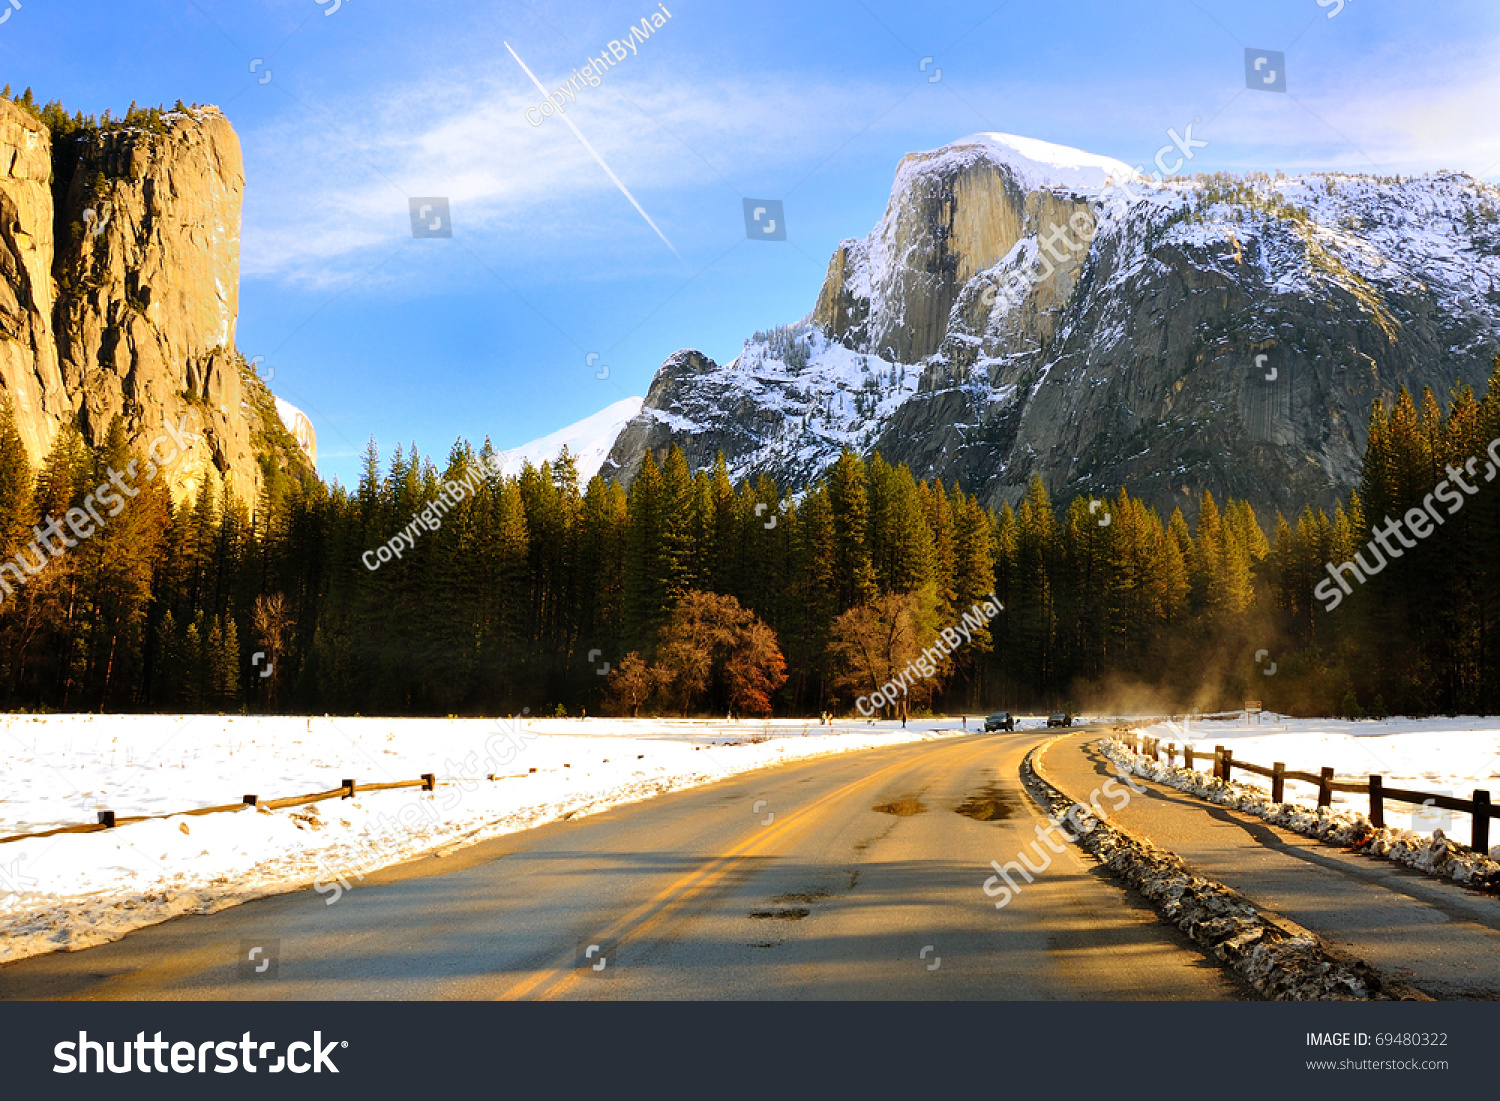 middle eastern single men in yosemite national park Online dating leaves middle-aged women in 'single  41 now for women and 43 for men – and the number of single parents is projected to rise to 19 million over.